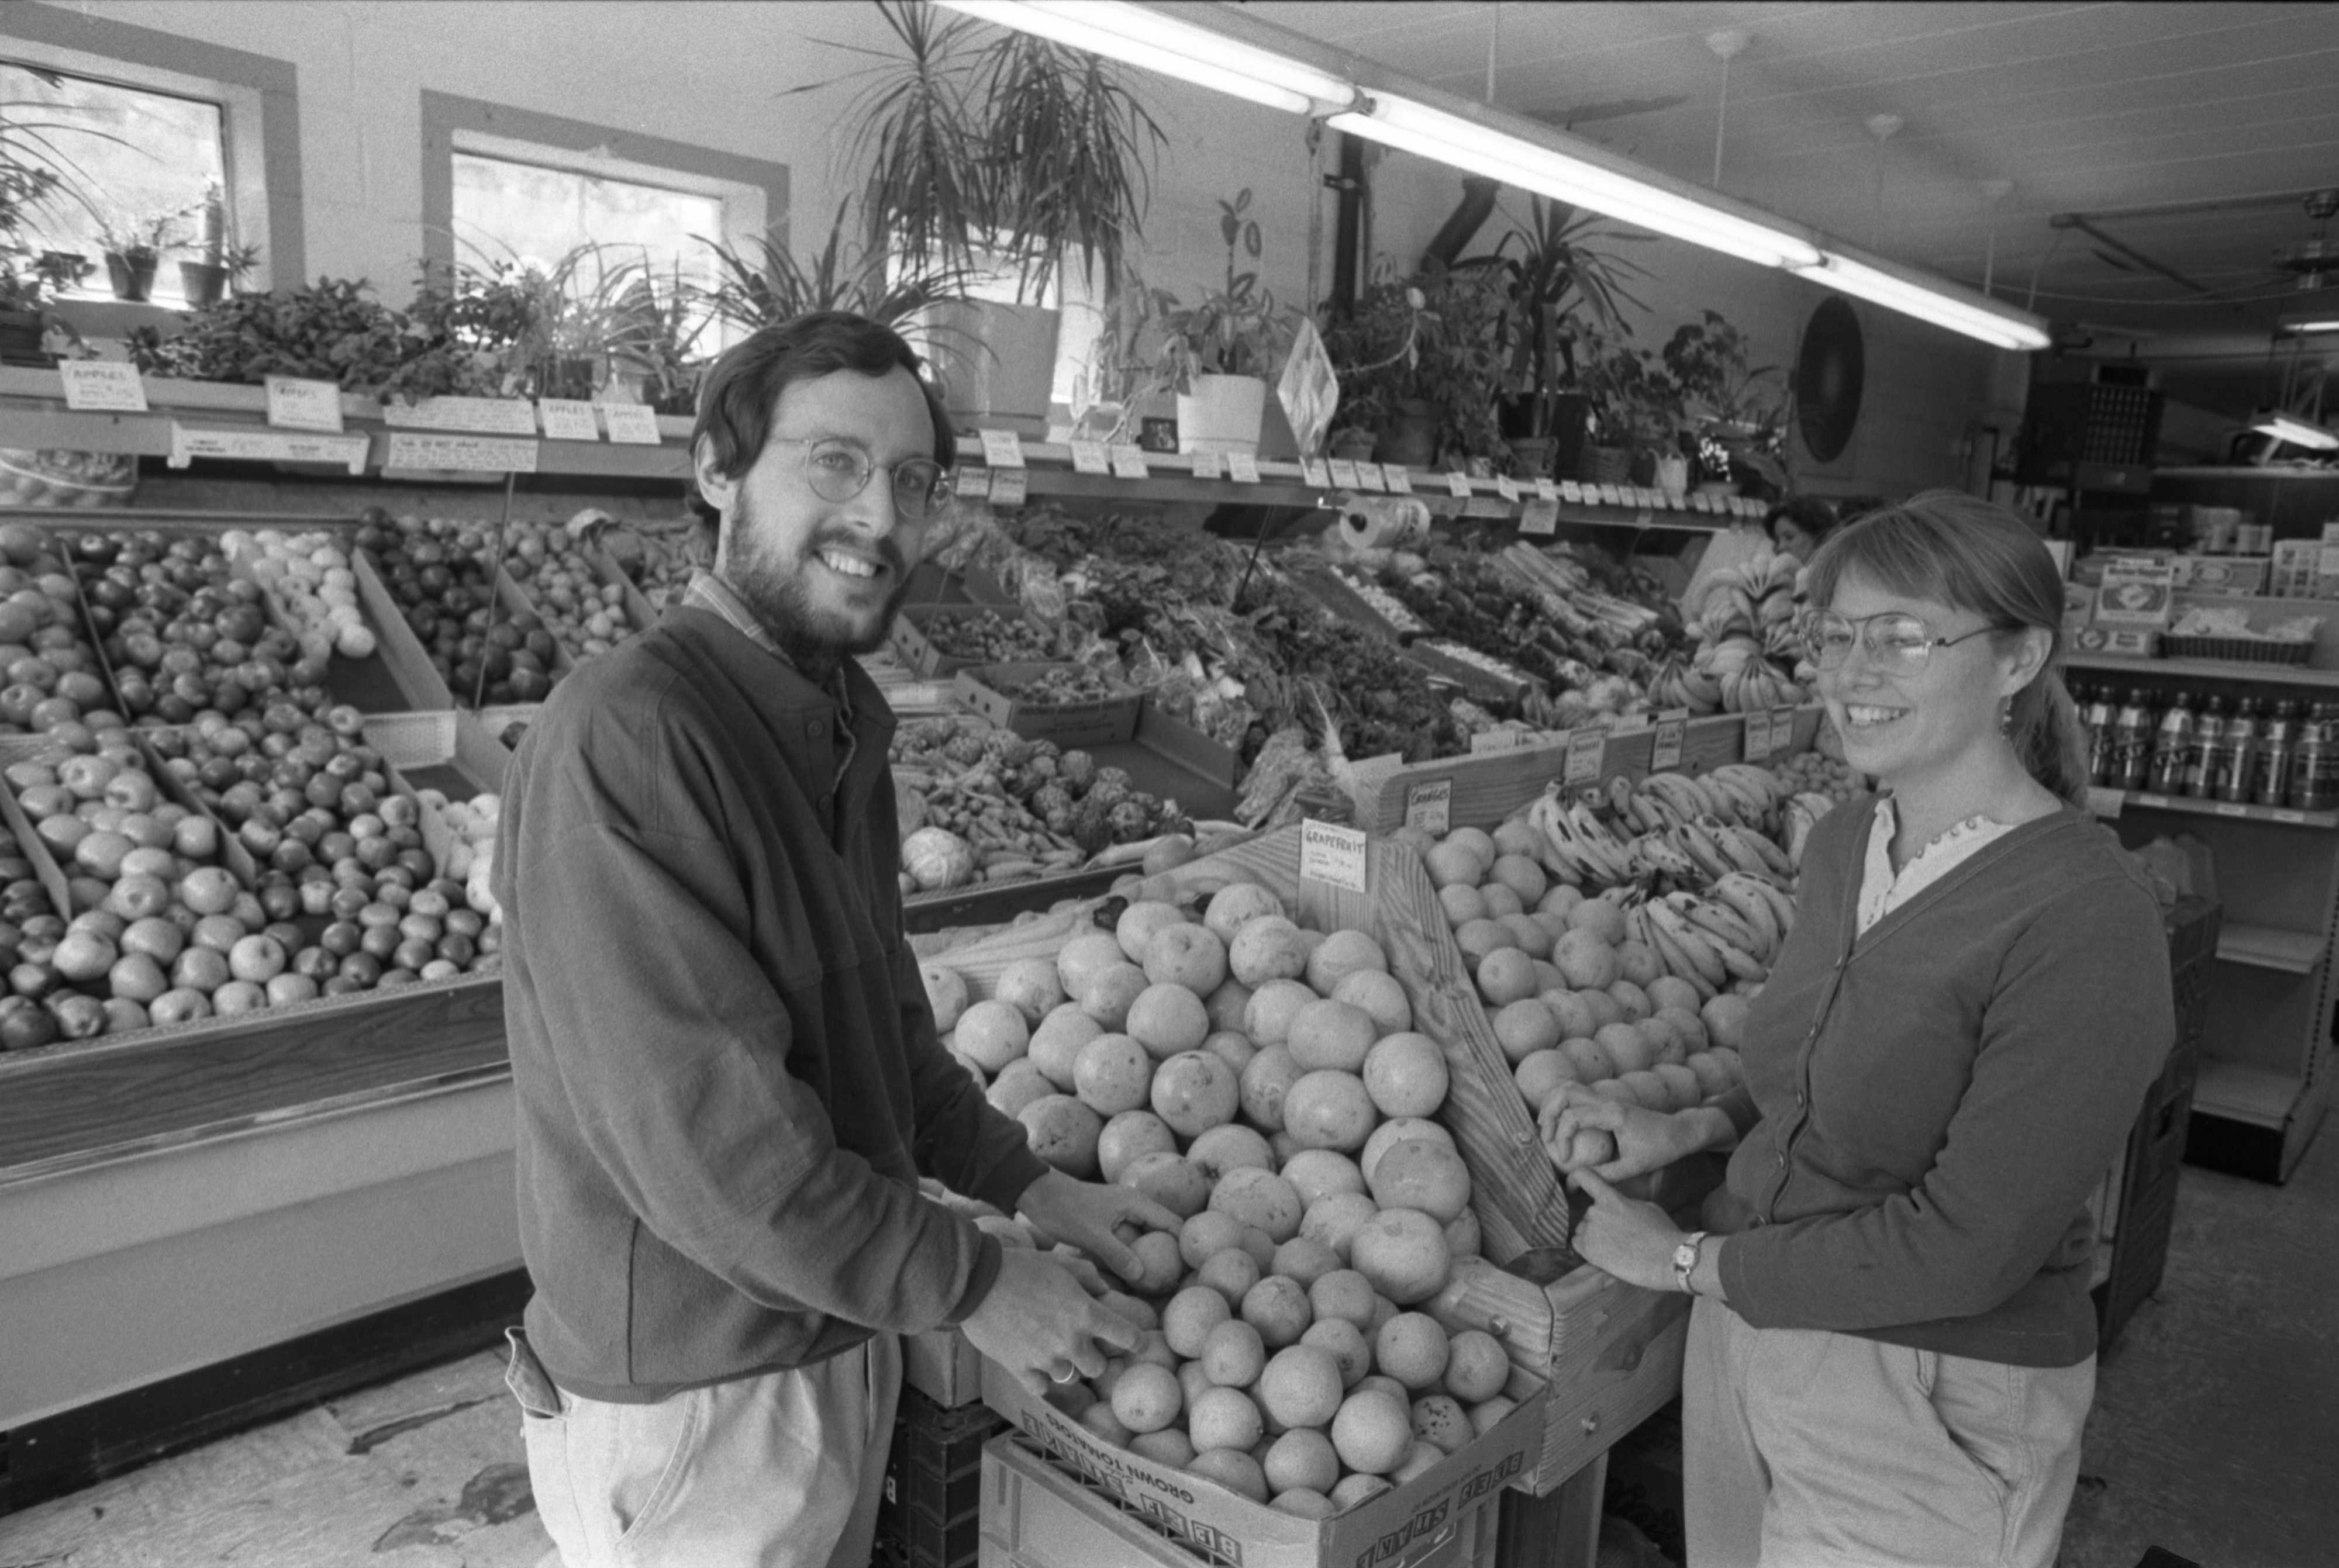 David Blackburn & Ruth Ransom, Managers At The People's Food Co-Op On Packard Road, April 16, 1989 image